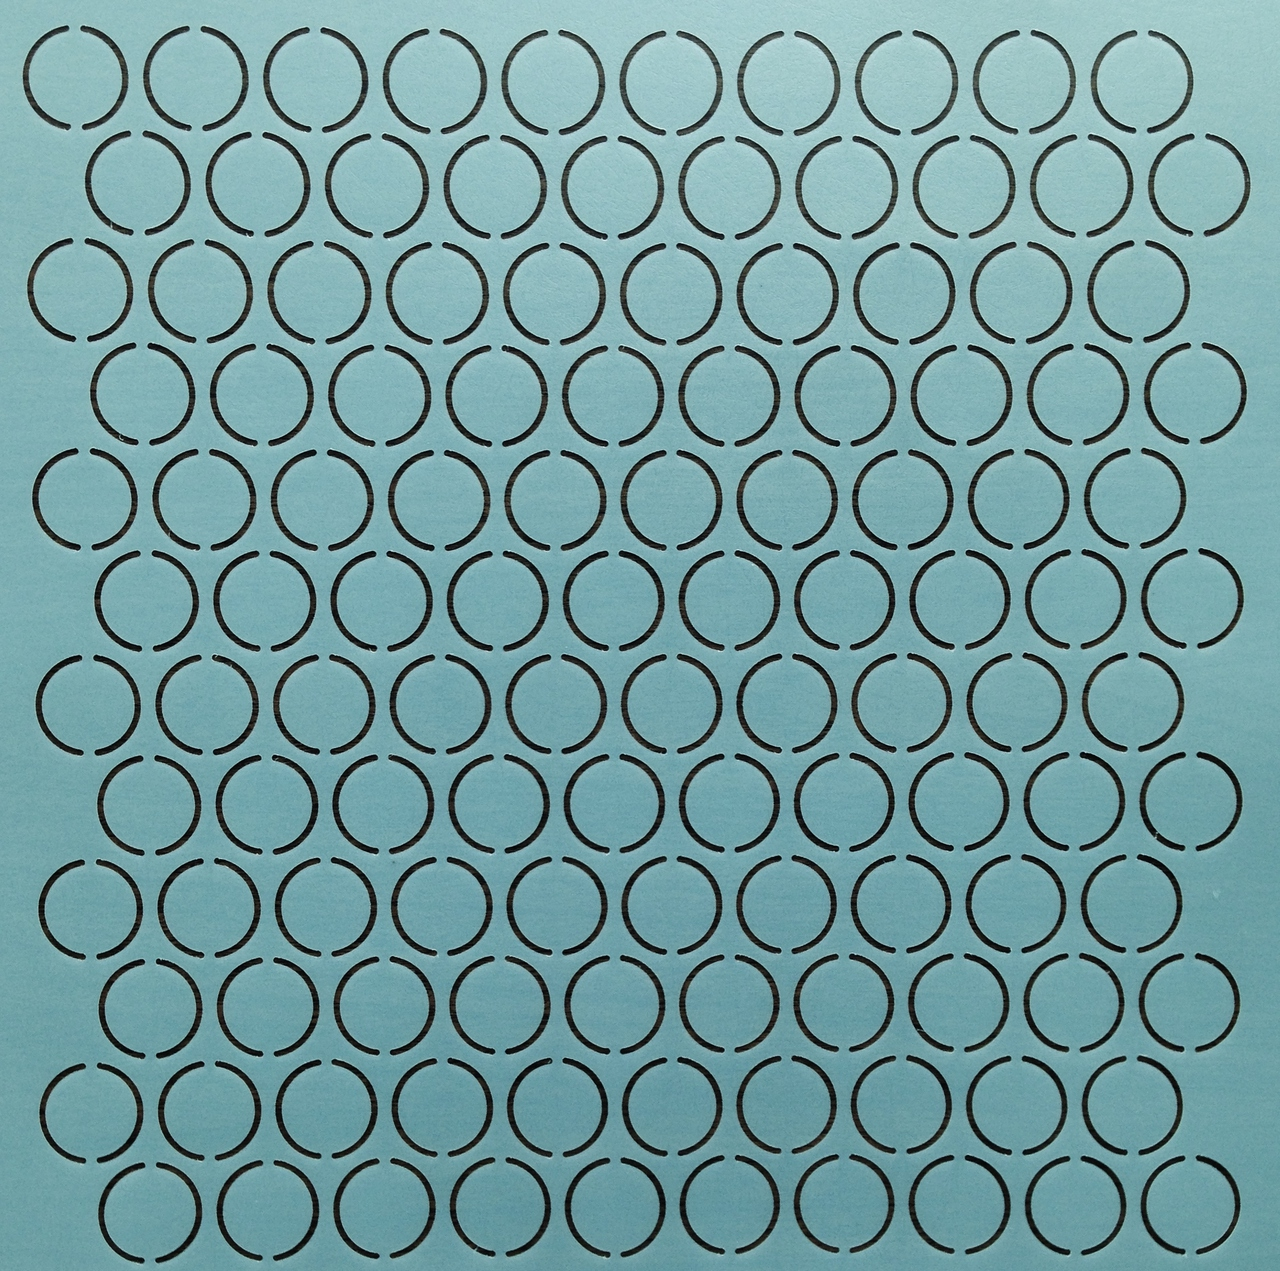 Small Circles Background 12